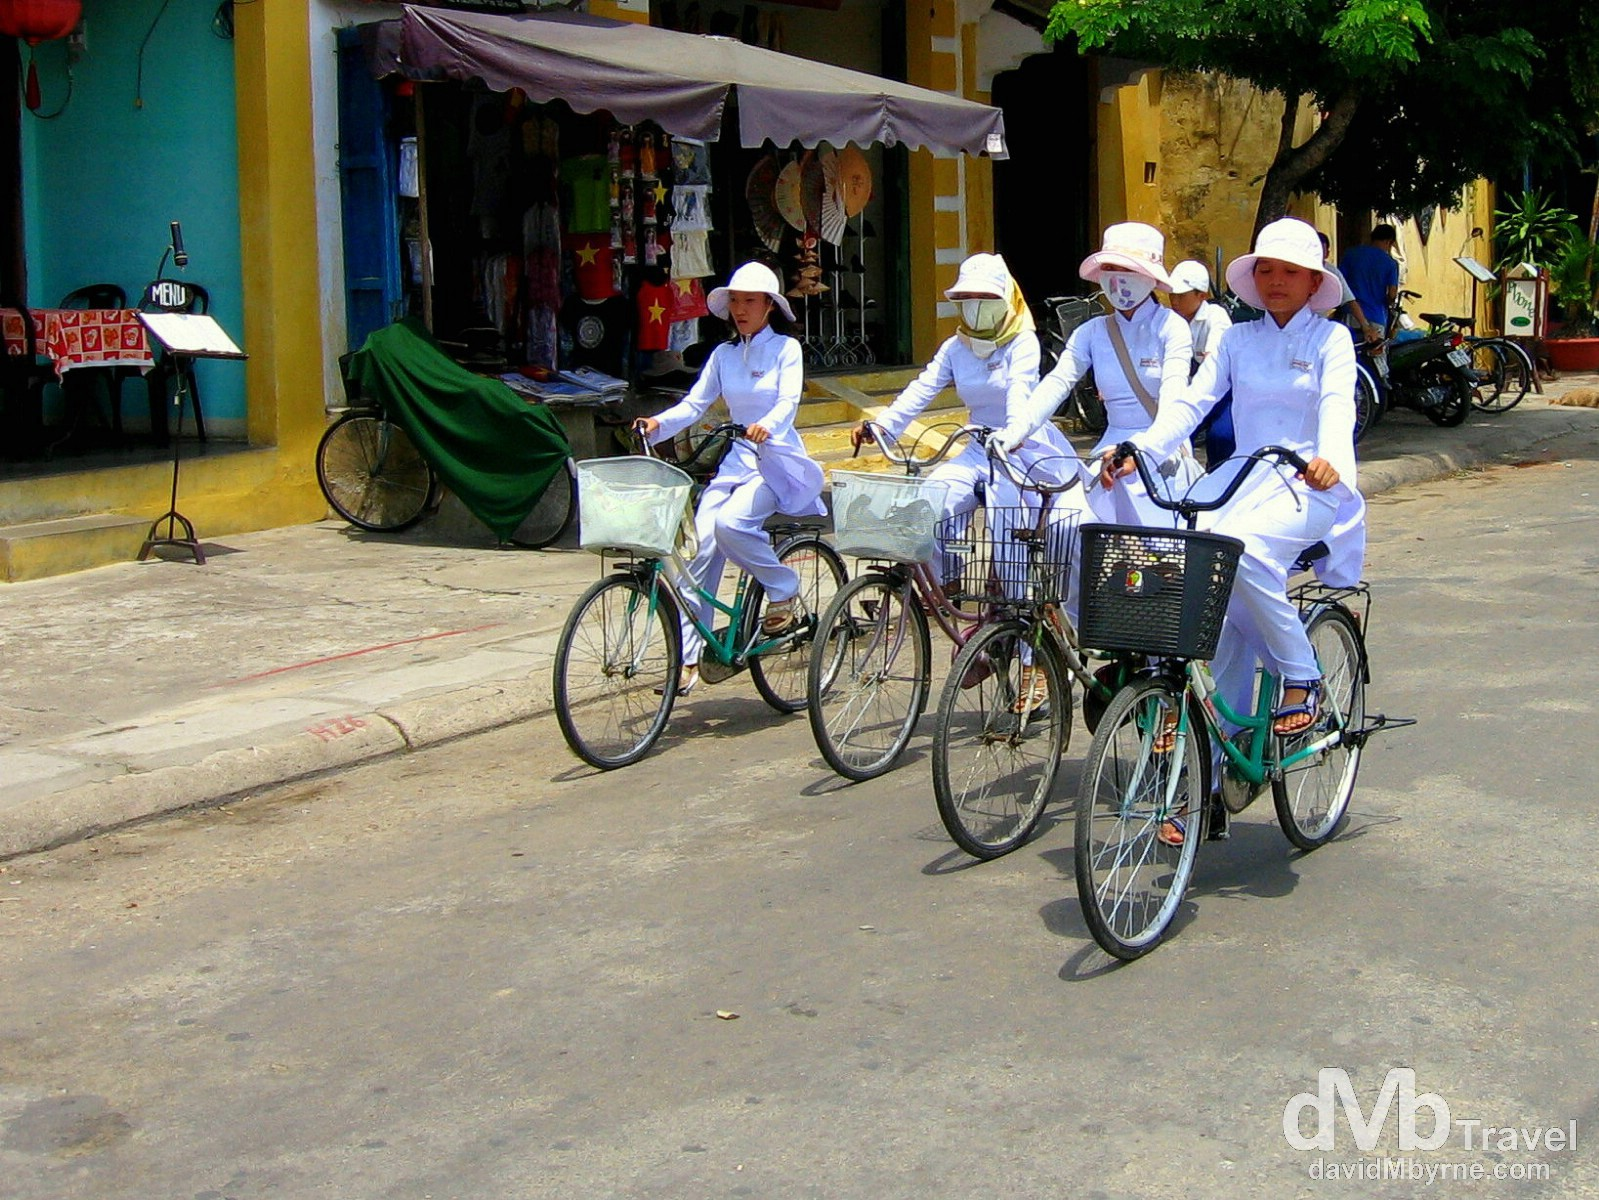 On the streets of Hoi An, Central Vietnam. September 10th, 2005.